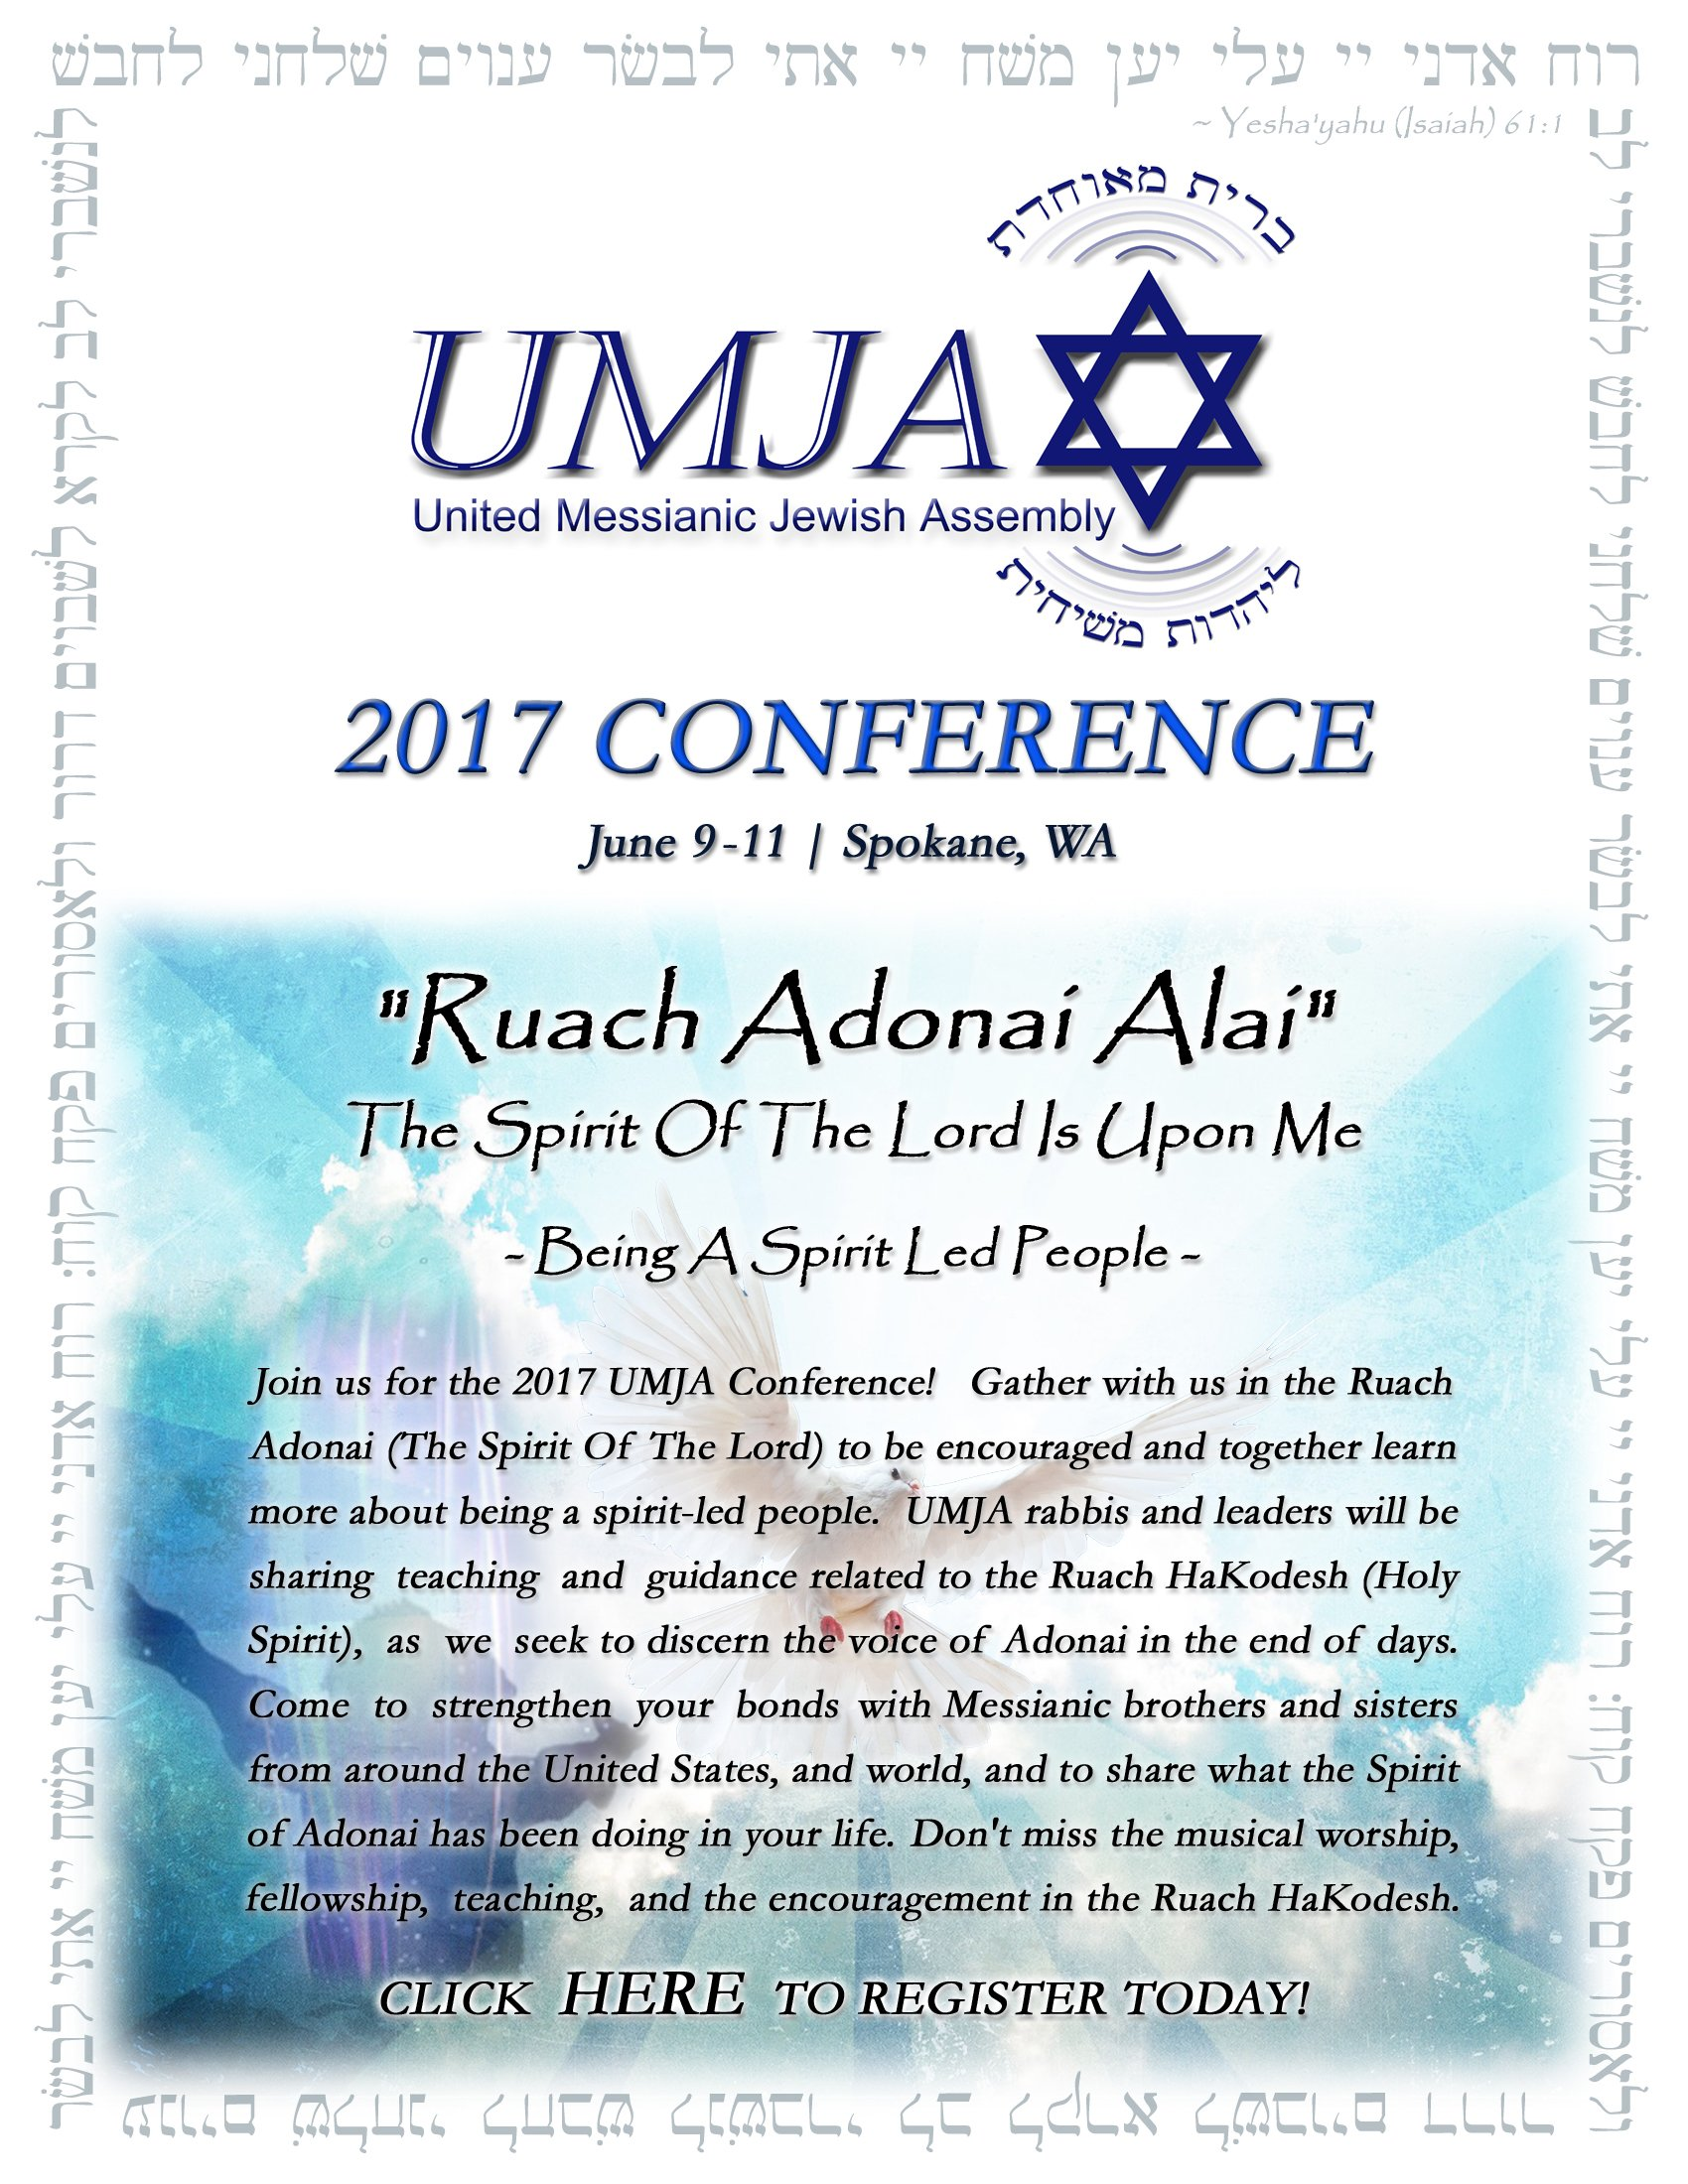 Register for the 2017 conference today!